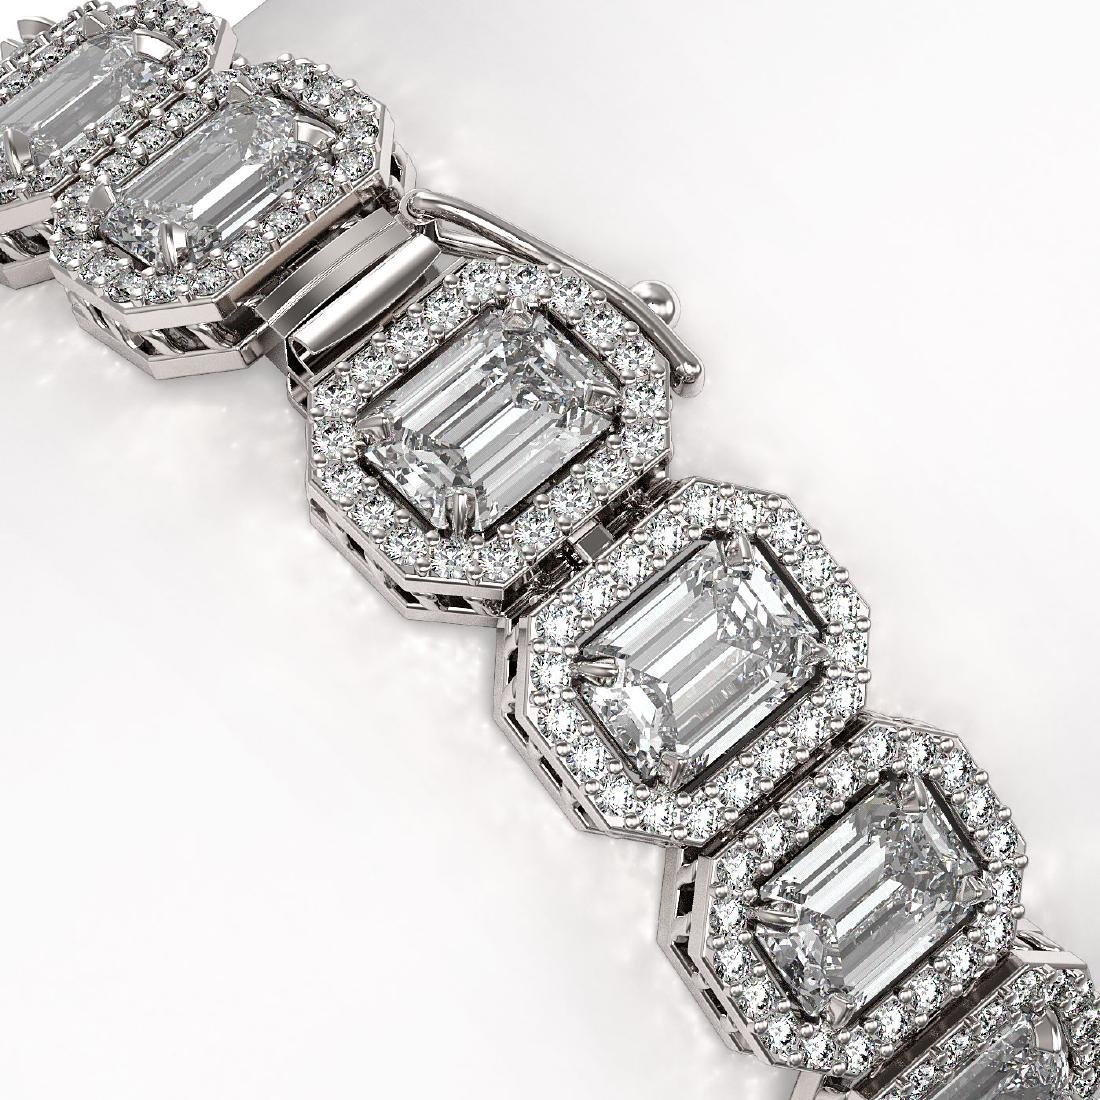 20.25 CTW Emerald Cut Diamond Designer Bracelet 18K - 3